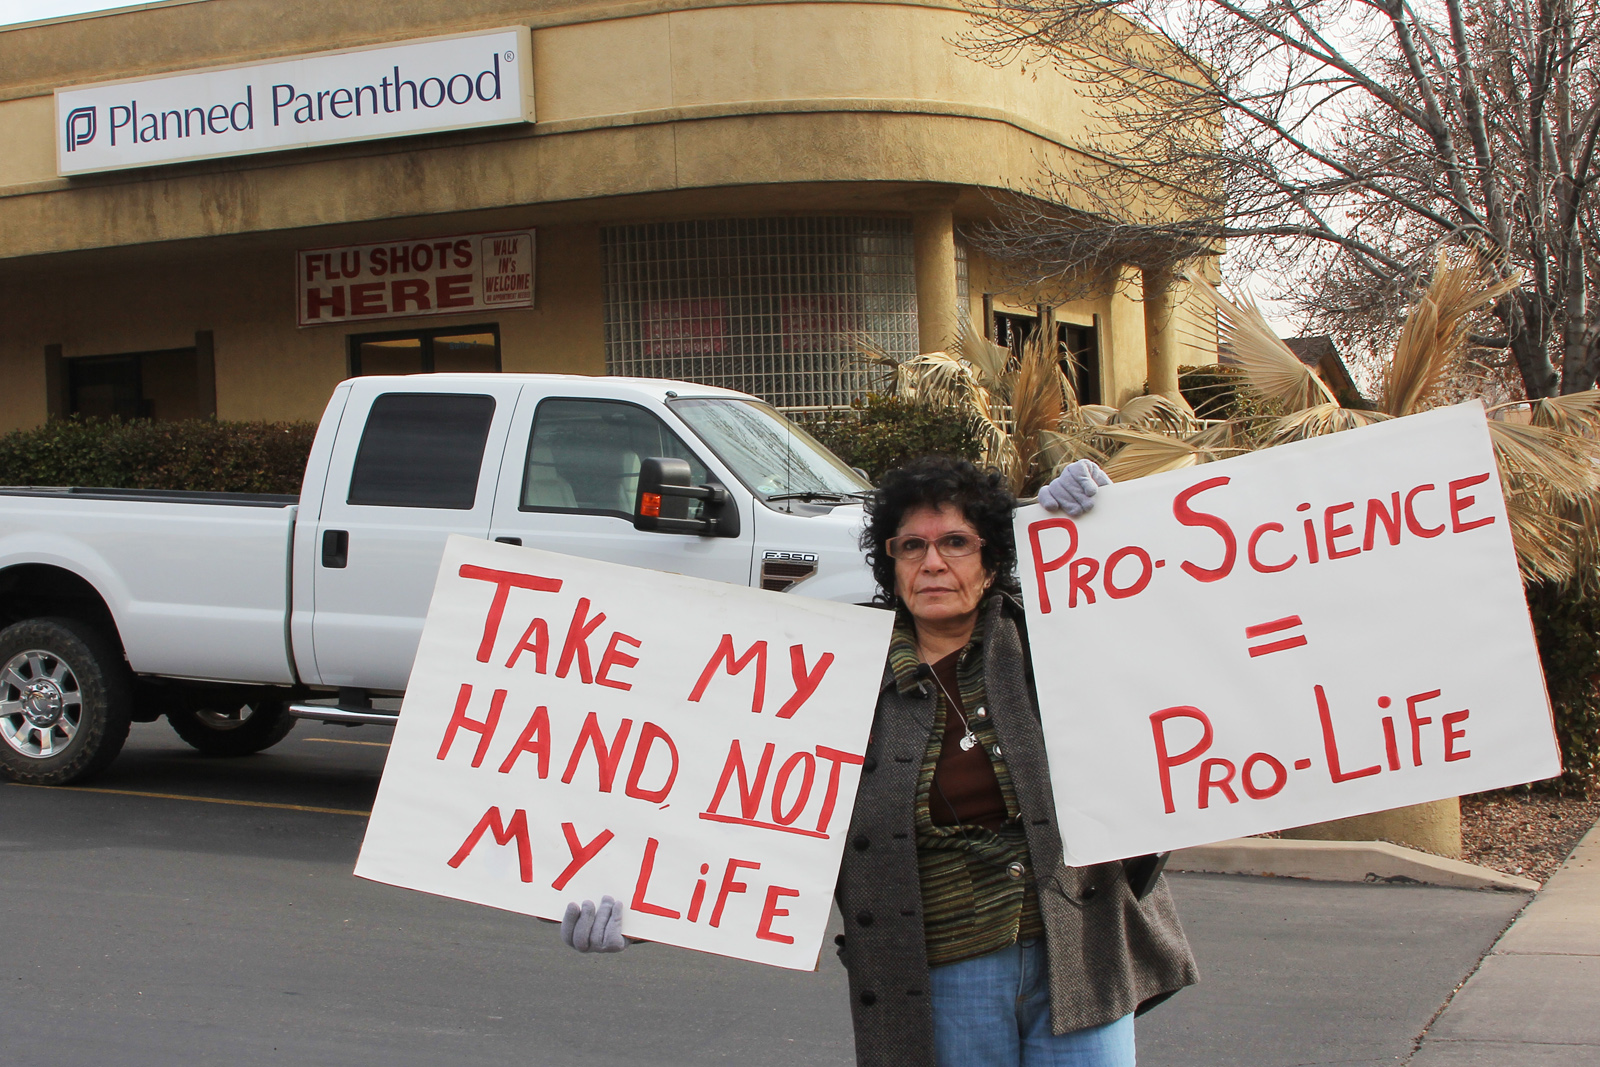 Pro-life advocates delivered their message before Planned Parenthood office on the 41st anniversary of the Supreme Court's decision in Roe v. Wade, St. George, Utah, Jan. 22, 2014 | Photo by John Teas, St. George News